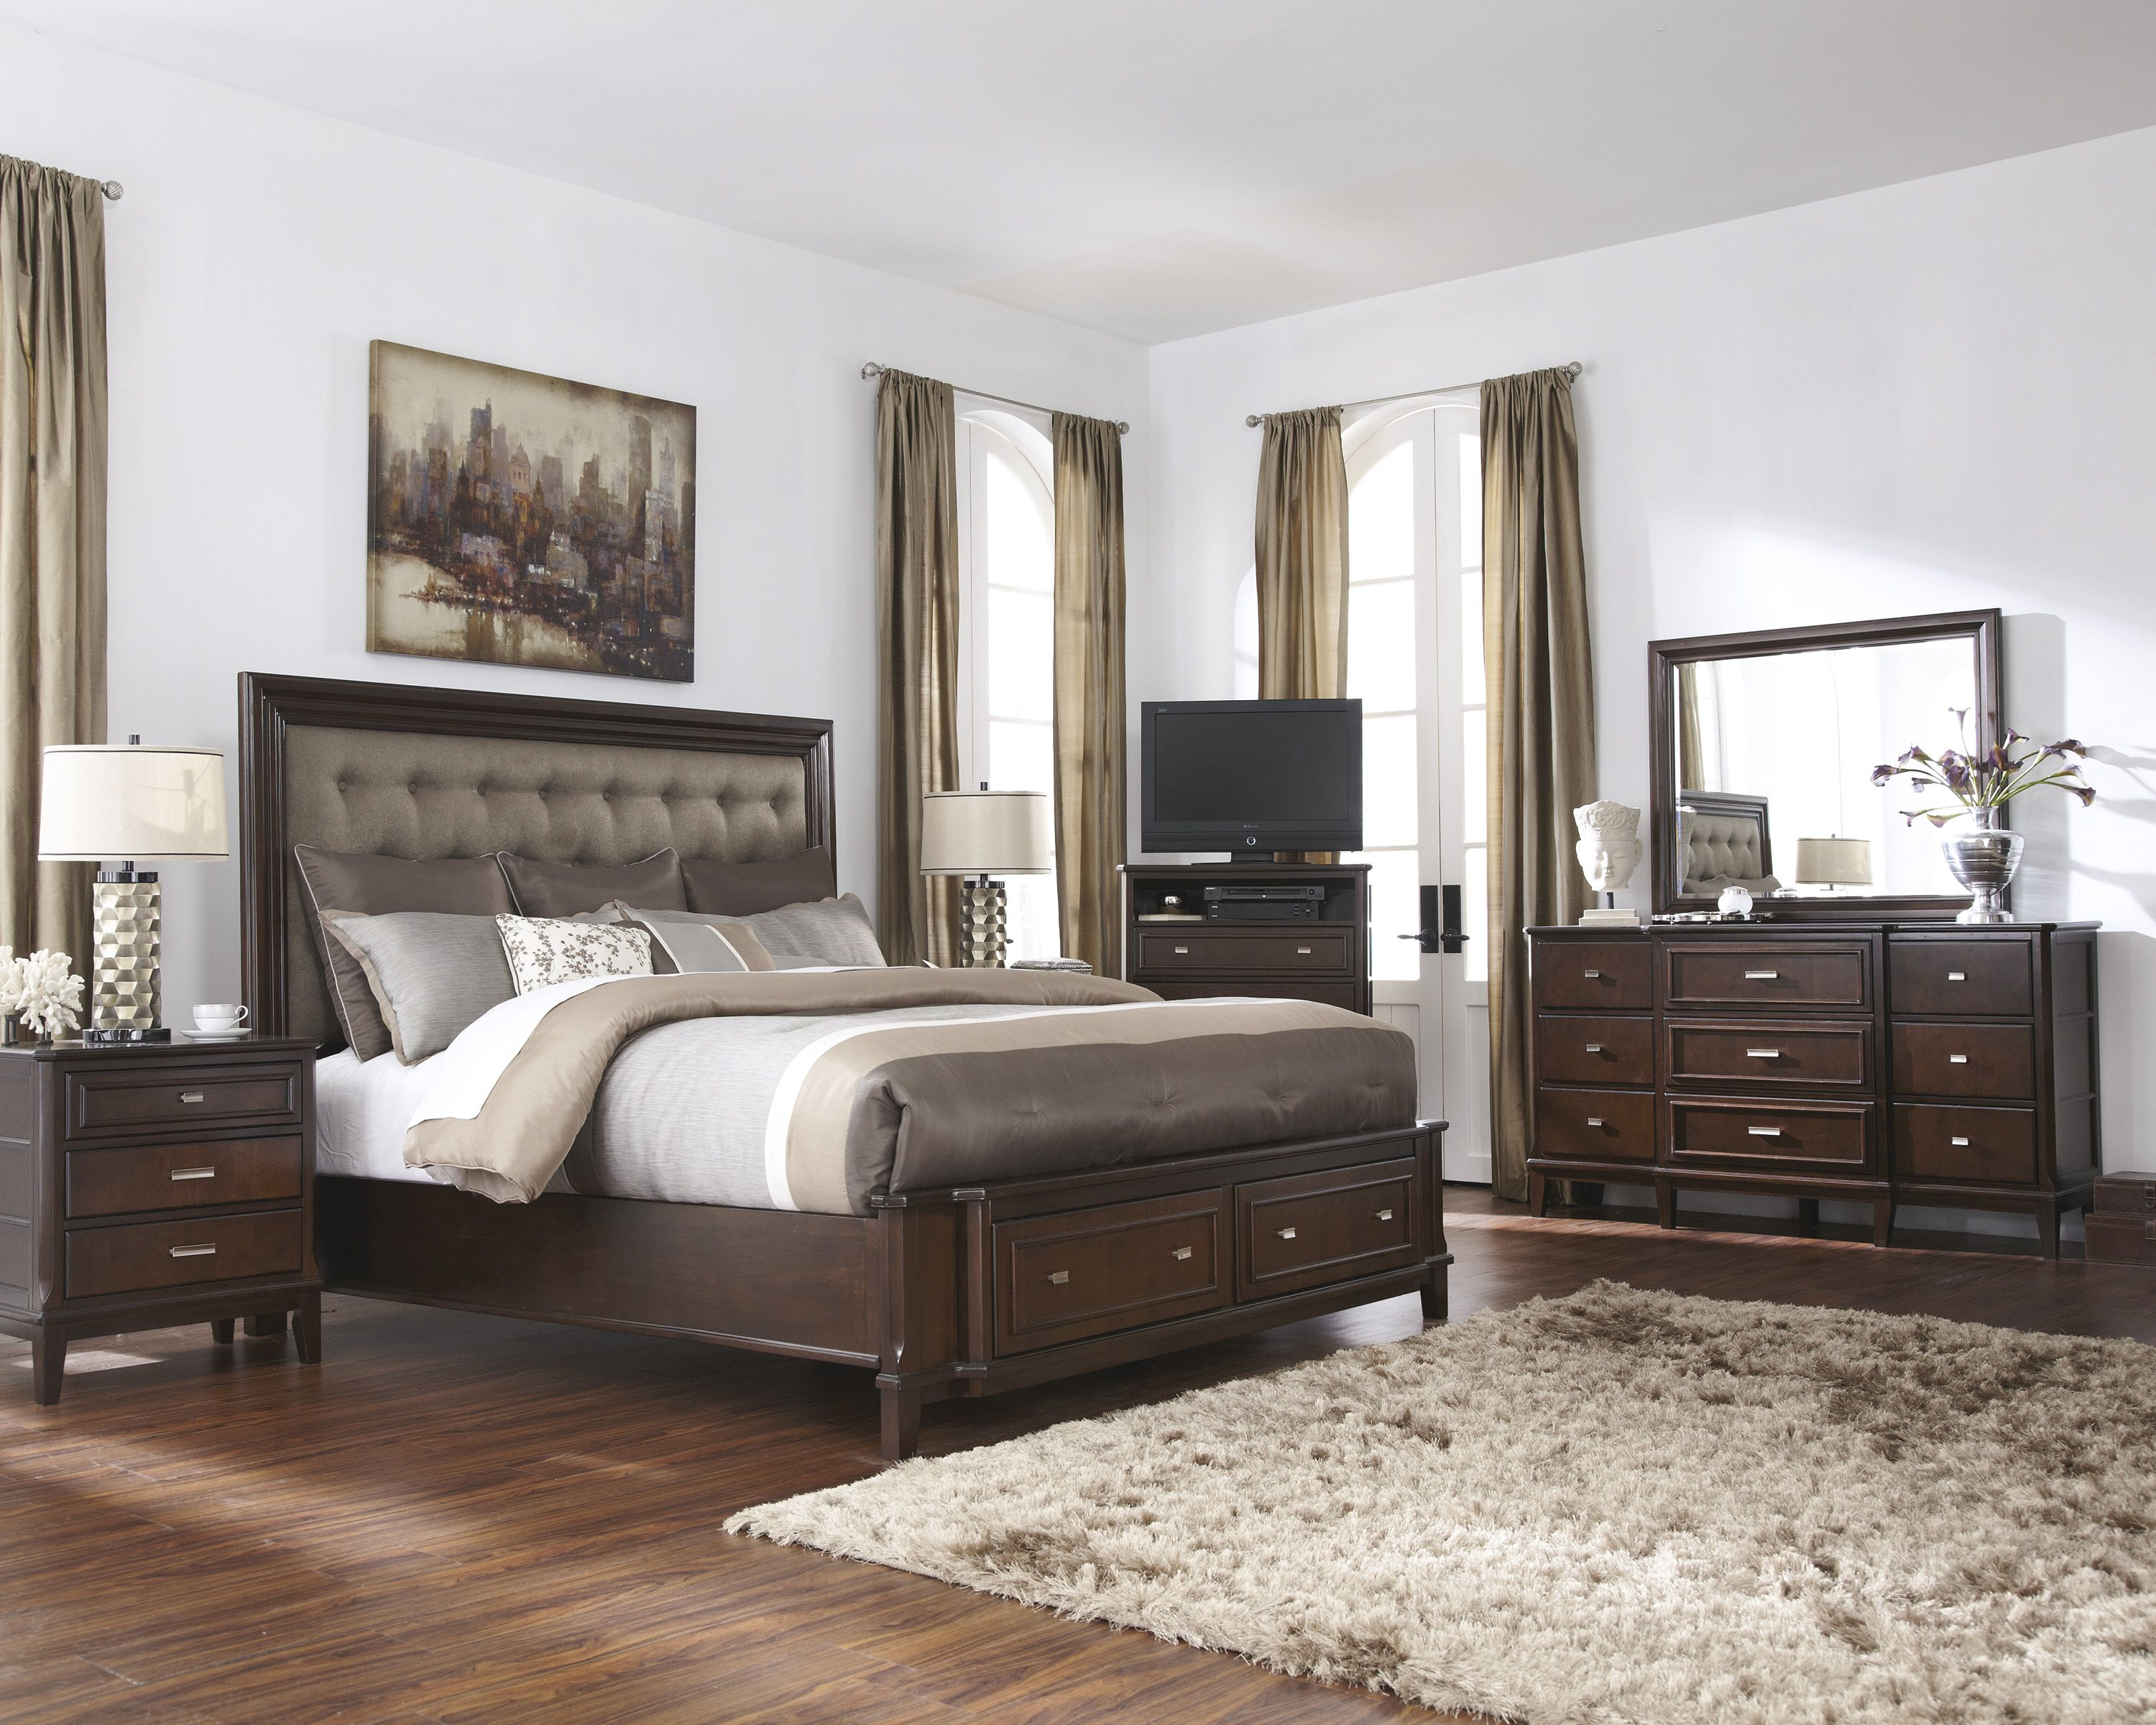 bedroom millennium sets twin bed kitchen of accessories ashley sofa outlet furniture size full set sleigh black home